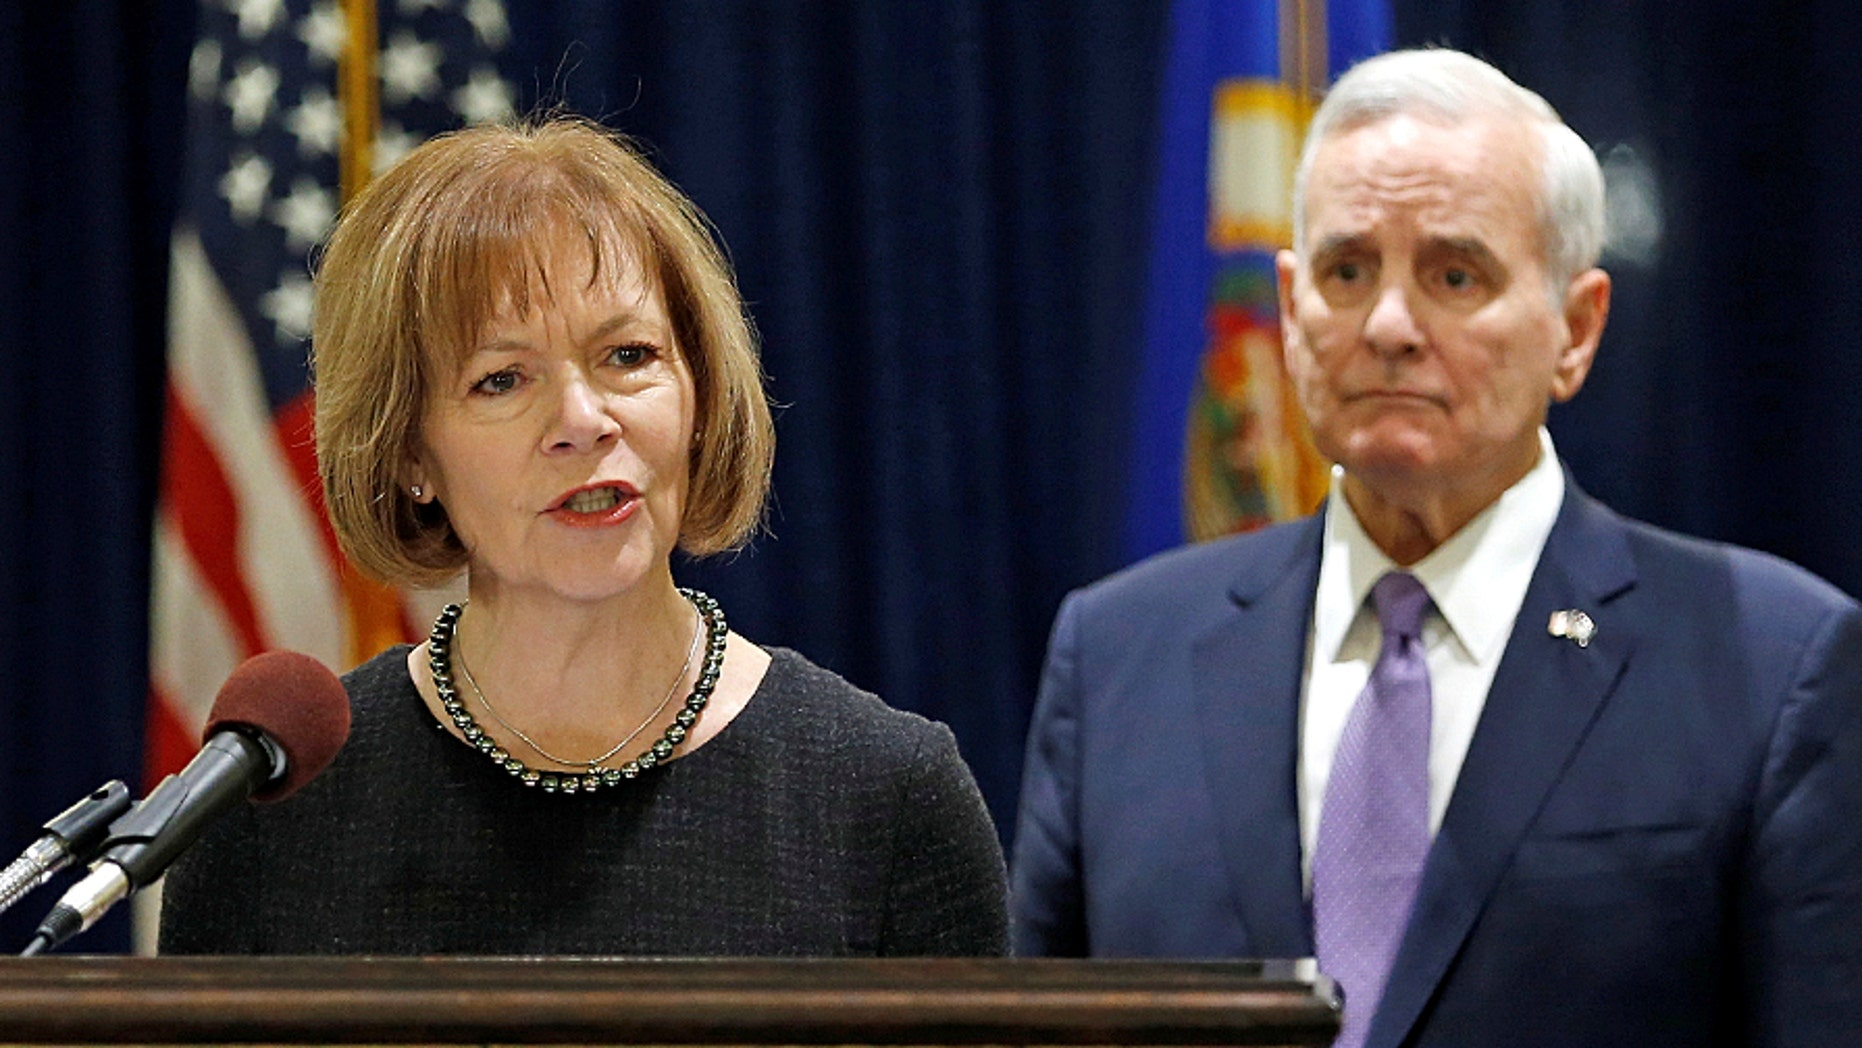 Minnesota Lt. Gov. Tina Smith answers a question after Minnesota Gov. Mark Dayton (D) announced Smith to replace U.S. Sen. Al Franken at the State Capitol in St. Paul, Minn., on Dec. 13, 2017.  (REUTERS)